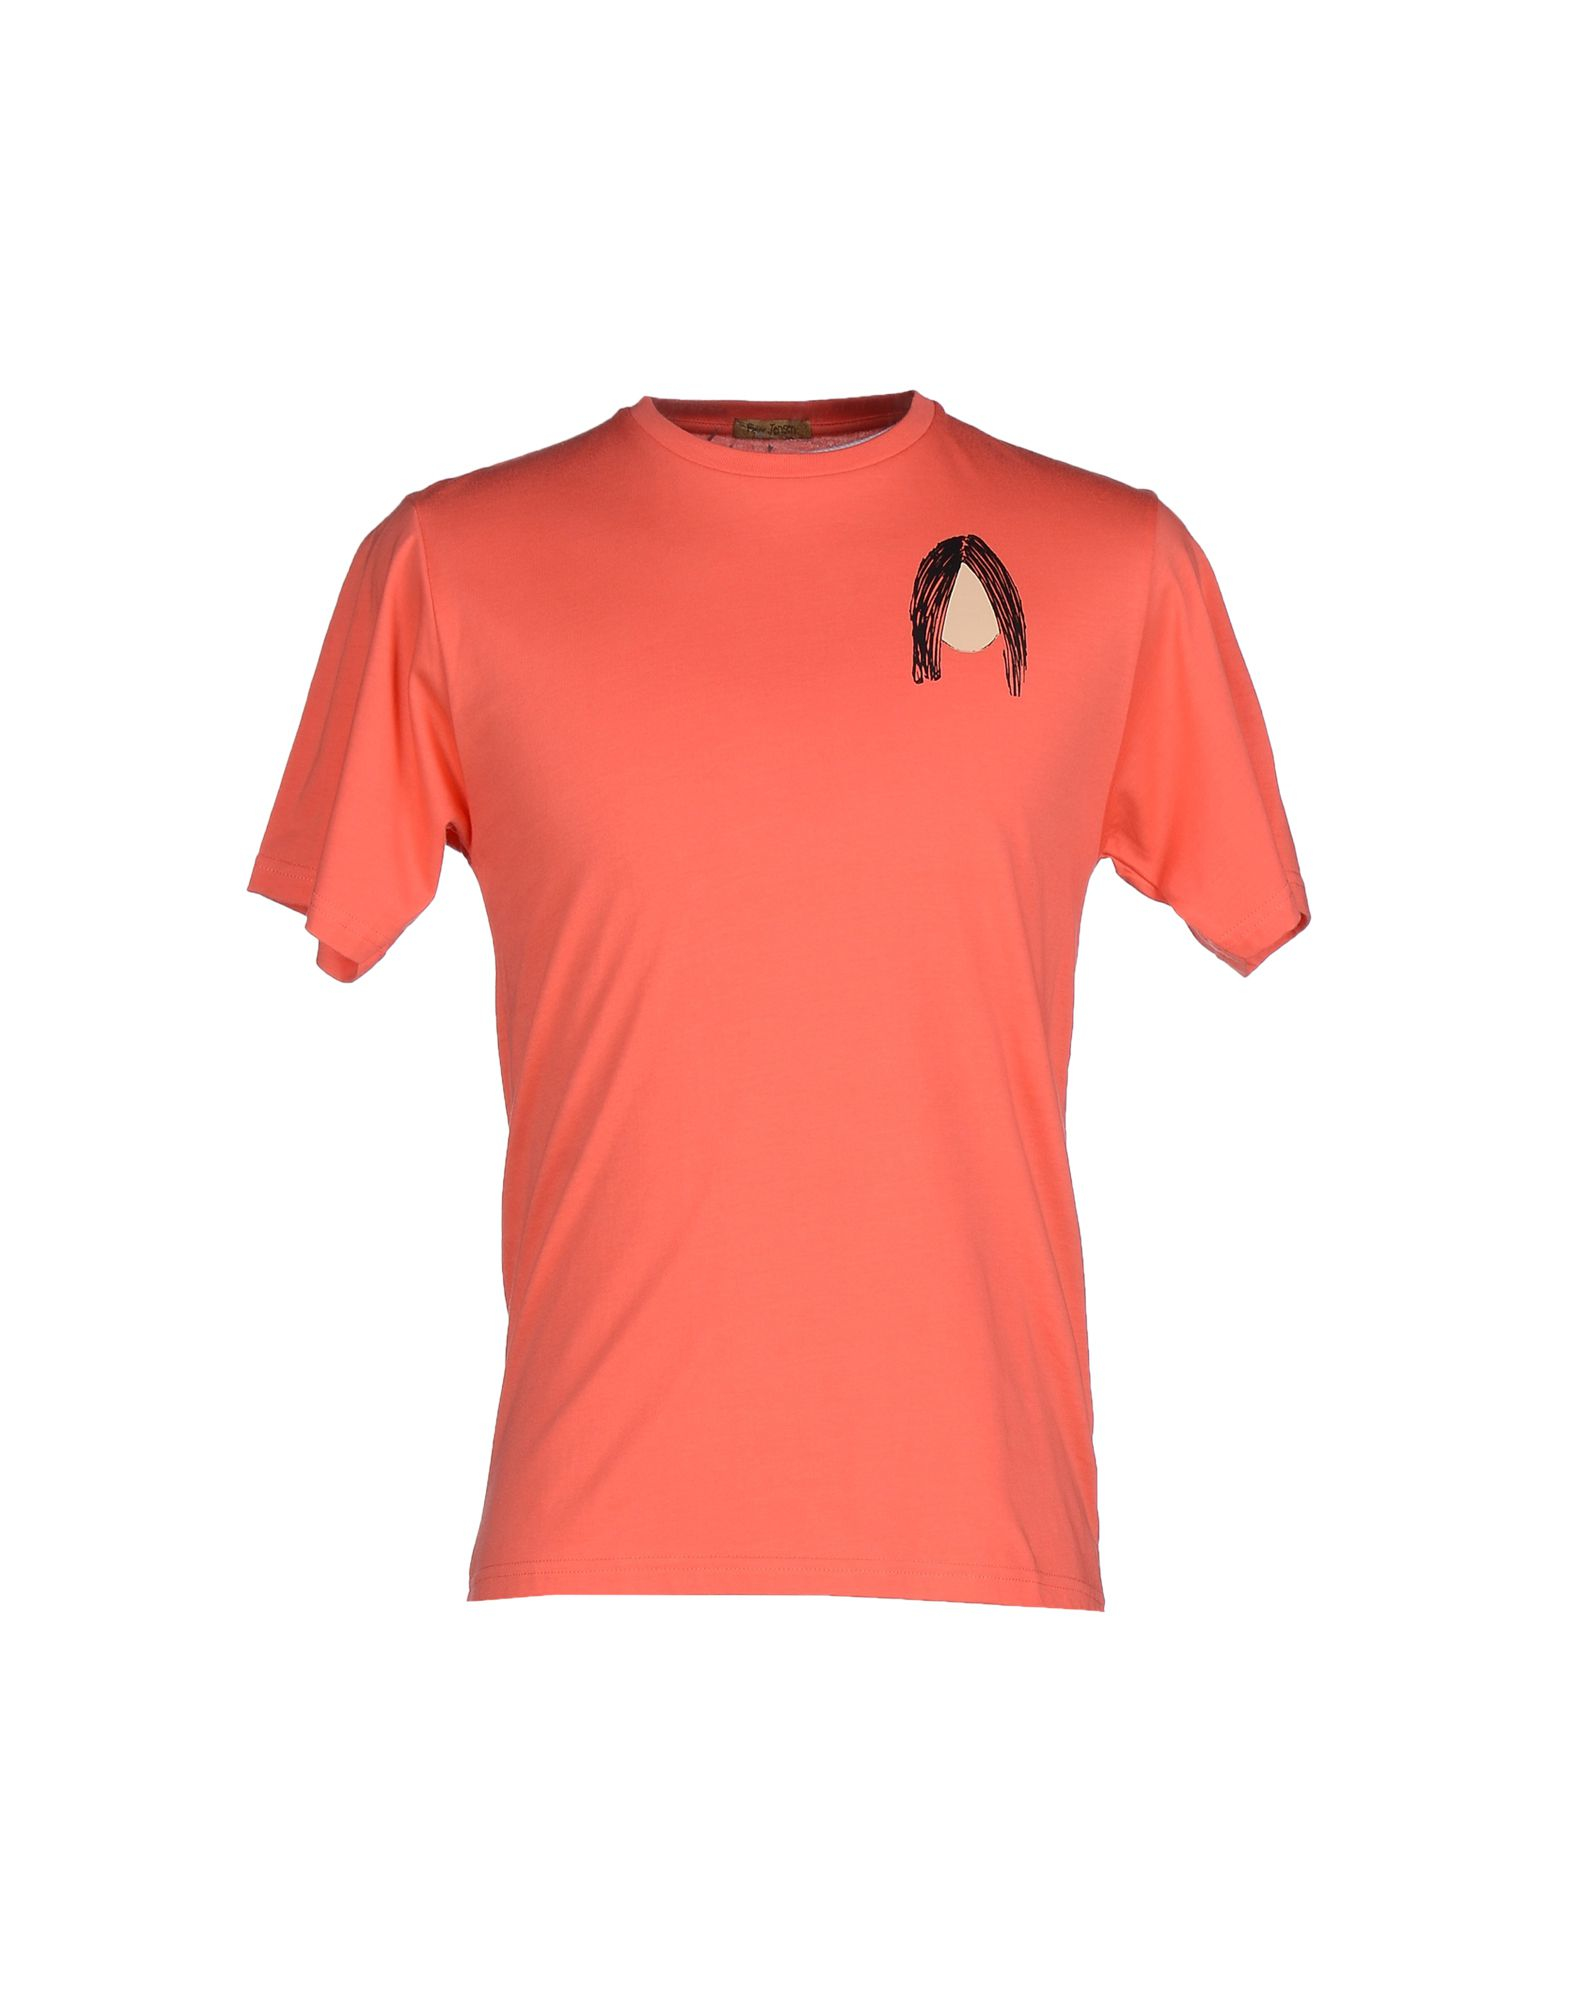 Peter Jensen T Shirt In Pink For Men Coral